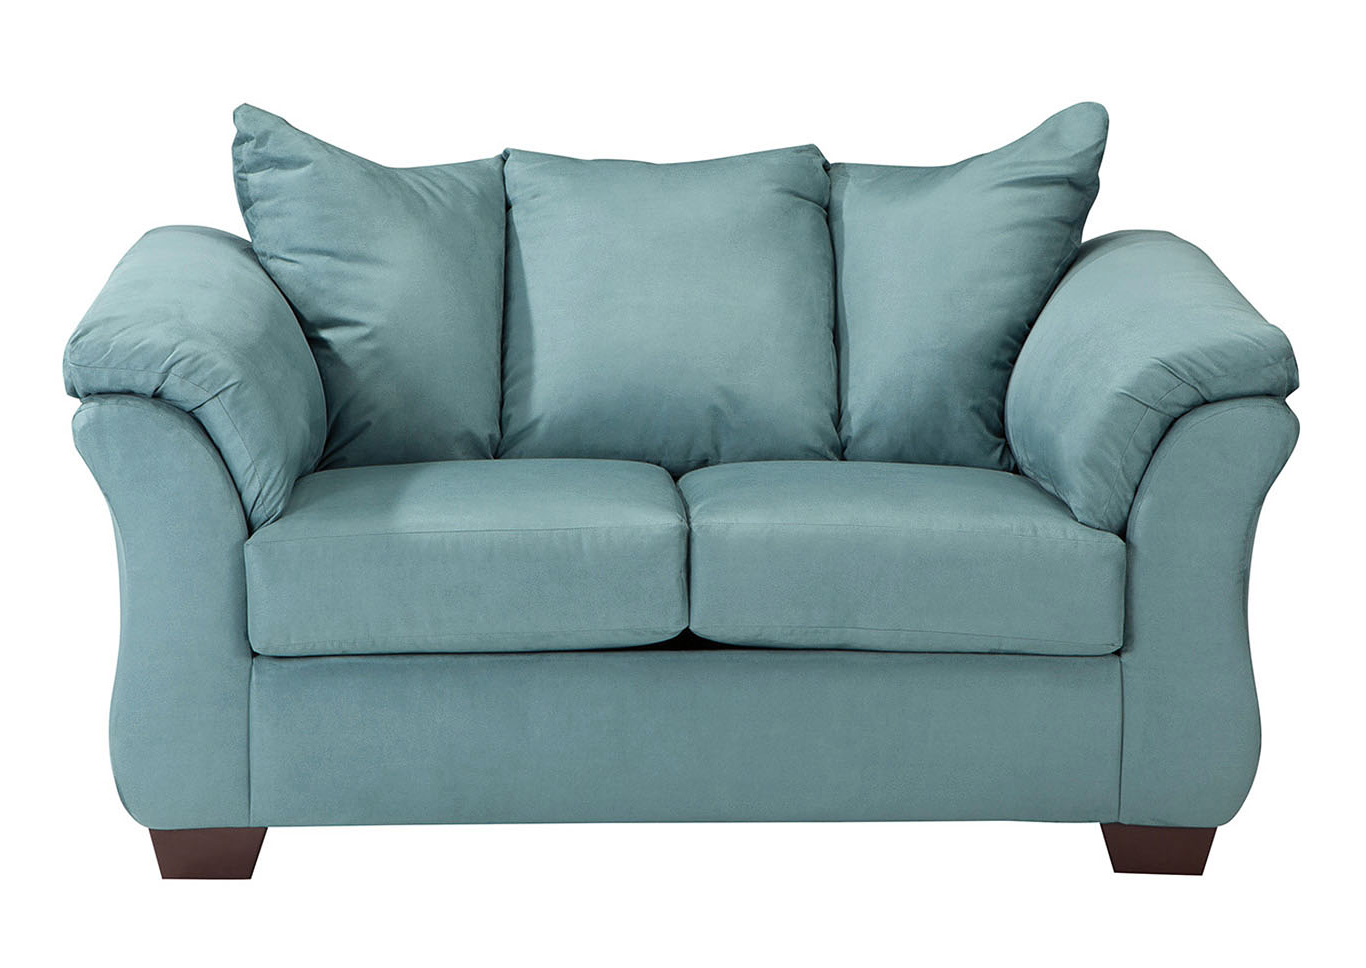 Sofa De Escai 4pde Mueblerias ashley Furniture Homestore Y Accesorios Para Su Hogar En